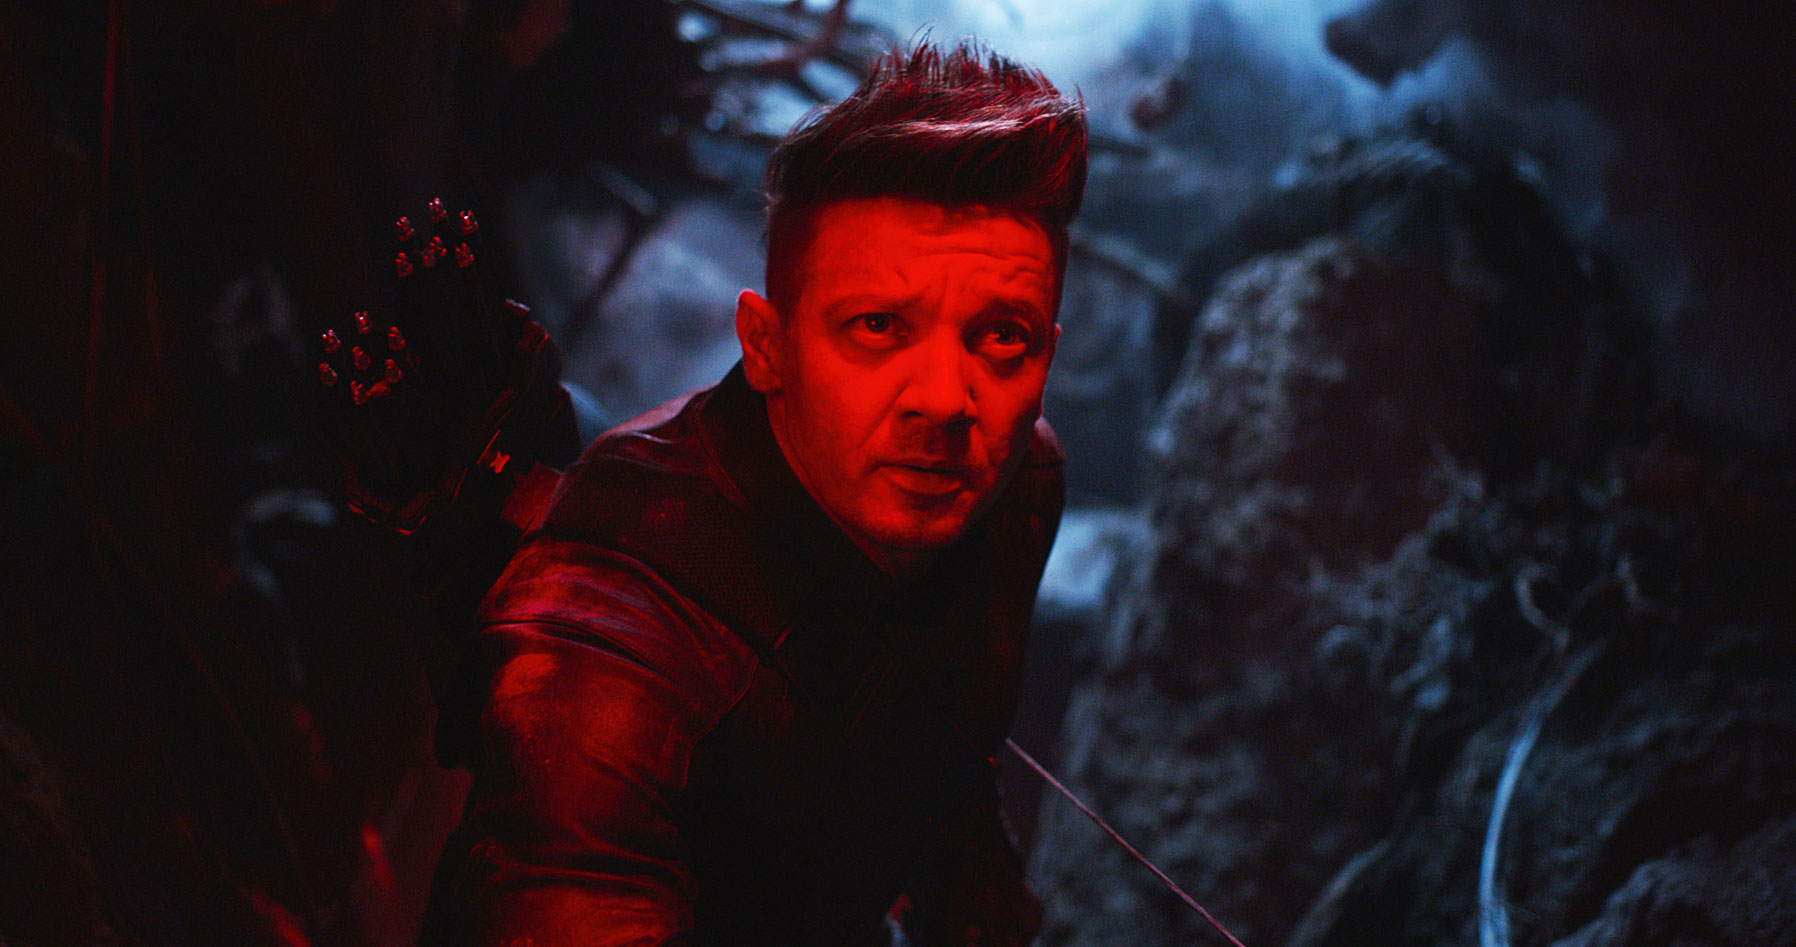 Avengers Endgame Movie Review Jeremy Renner - Jeremy Renner as Hawkeye/Clint Barton in 'Avengers: Endgame.